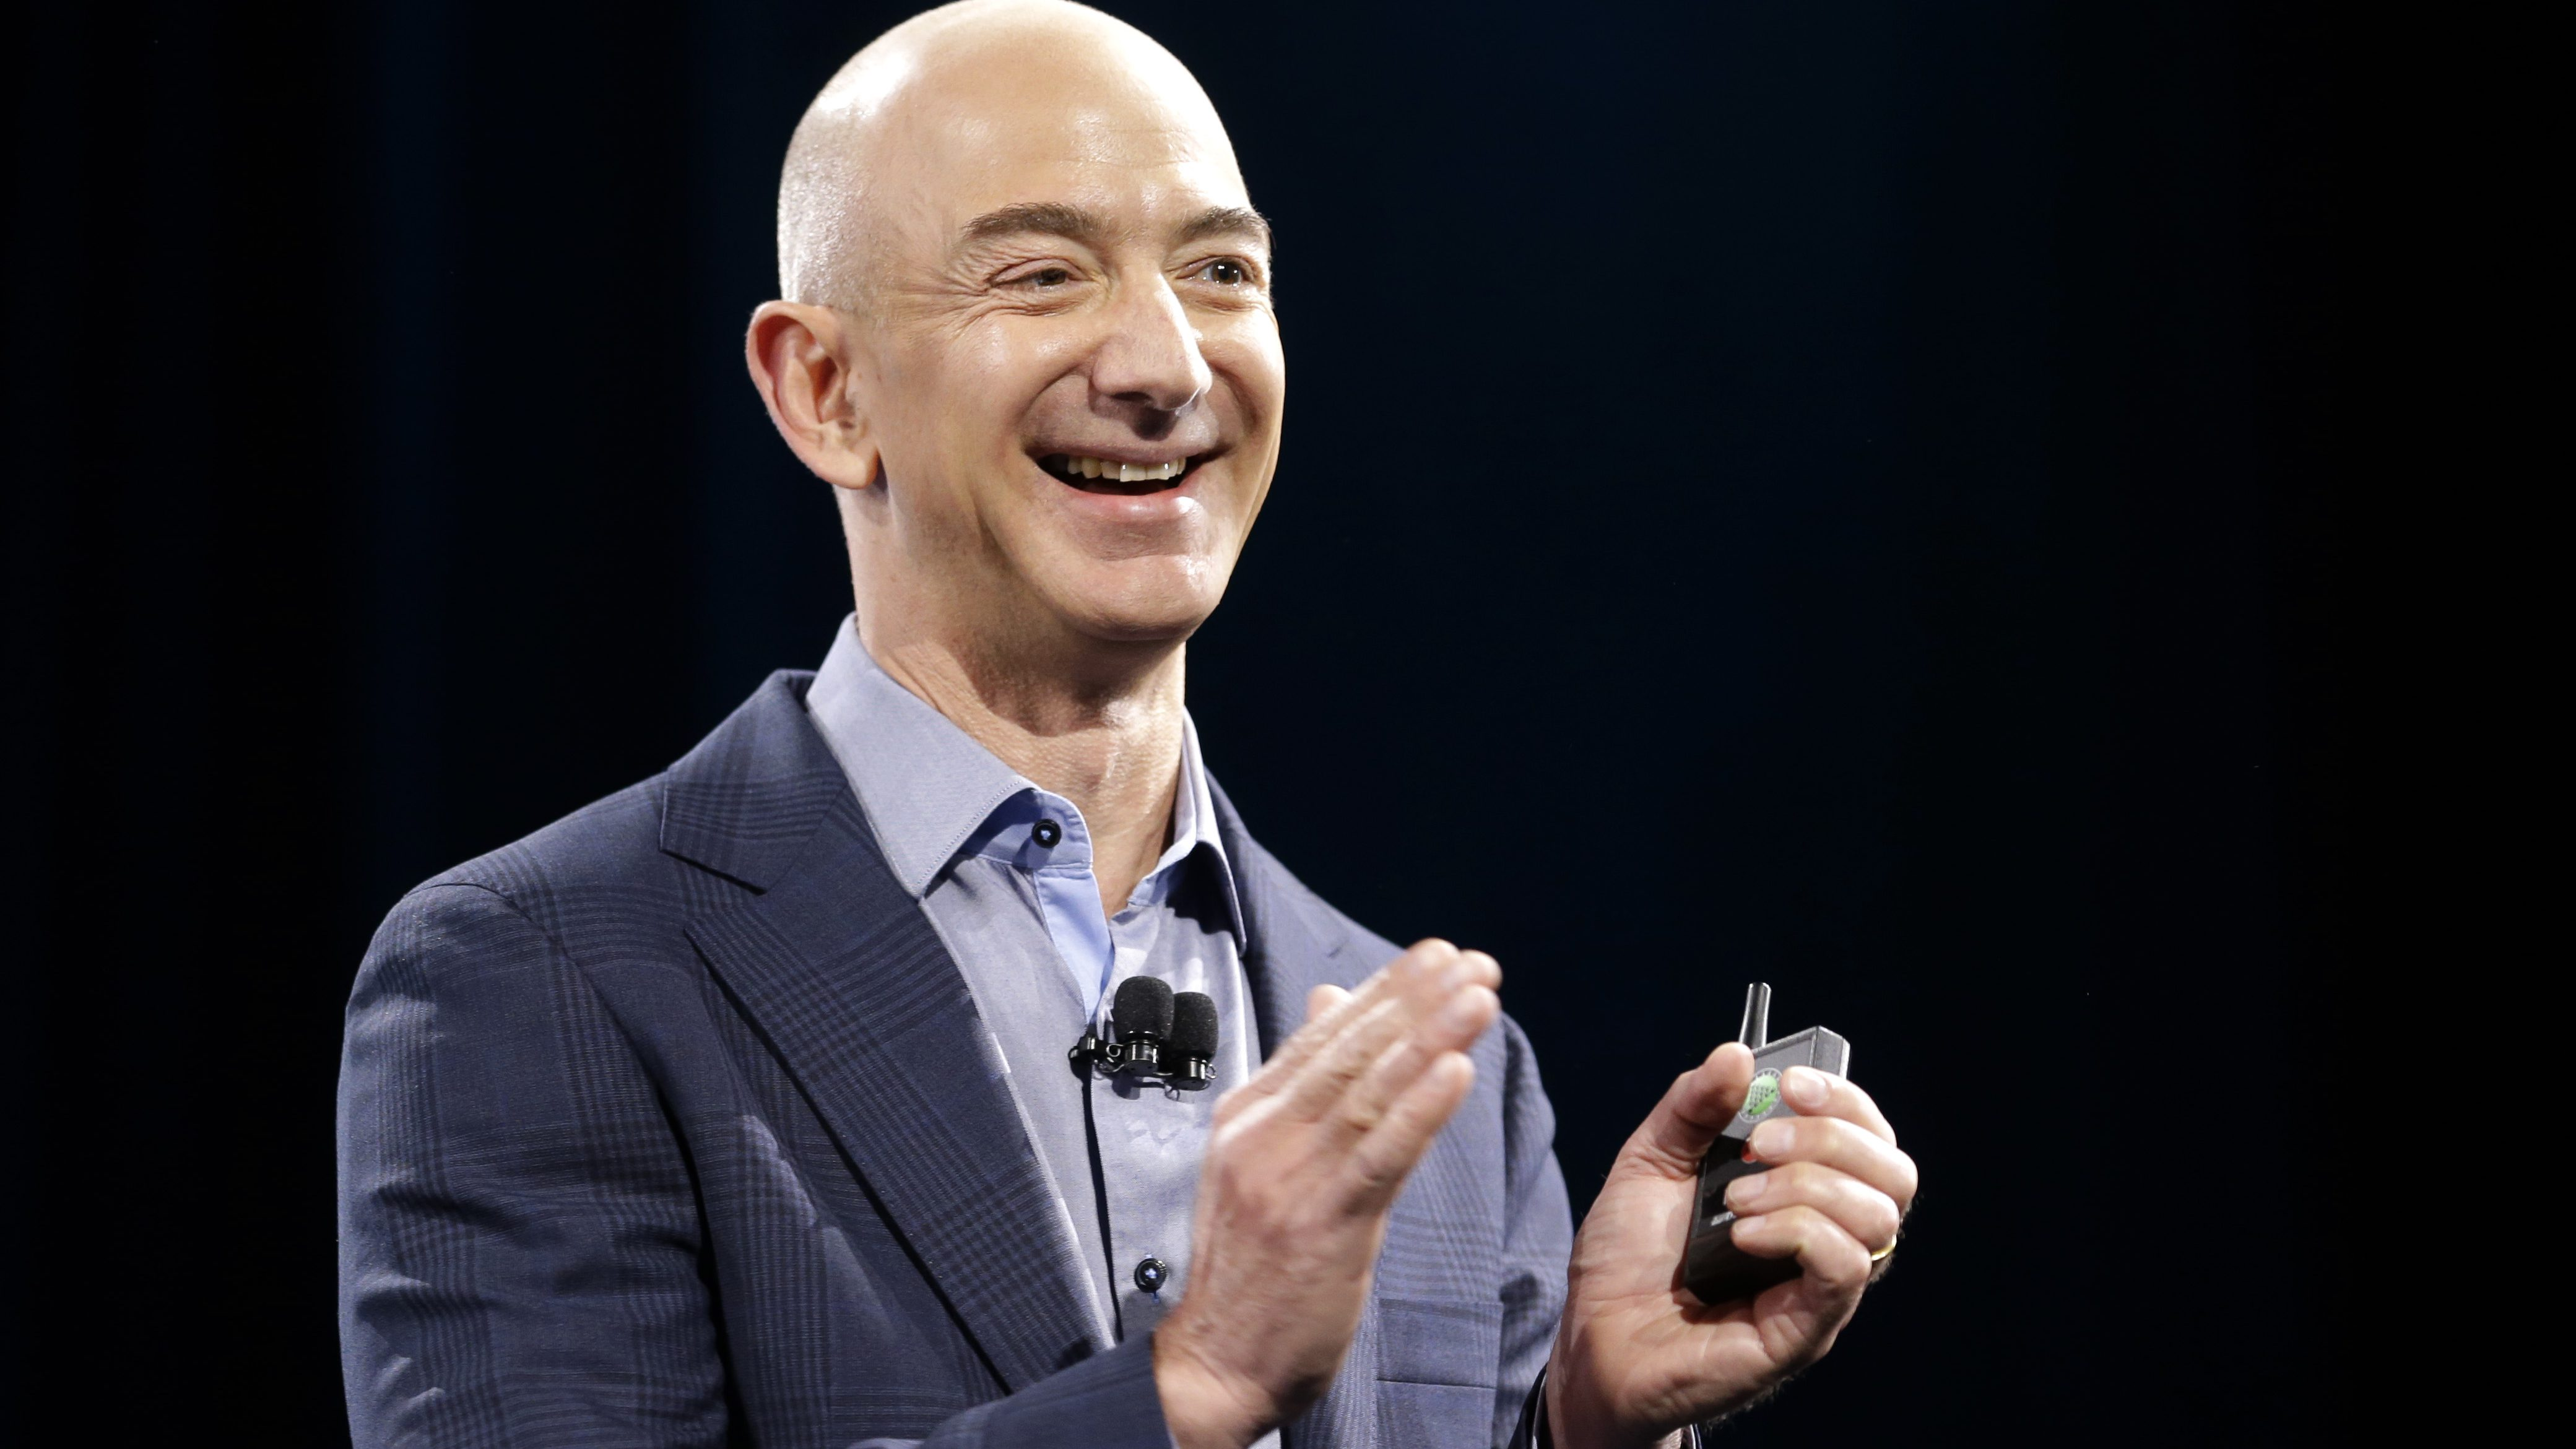 Amazon CEO Jeff Bezos holds a slide show controller and applauds at the start of the launch event for the new Amazon Fire Phone, Wednesday, June 18, 2014, in Seattle. (AP Photo/Ted S. Warren)